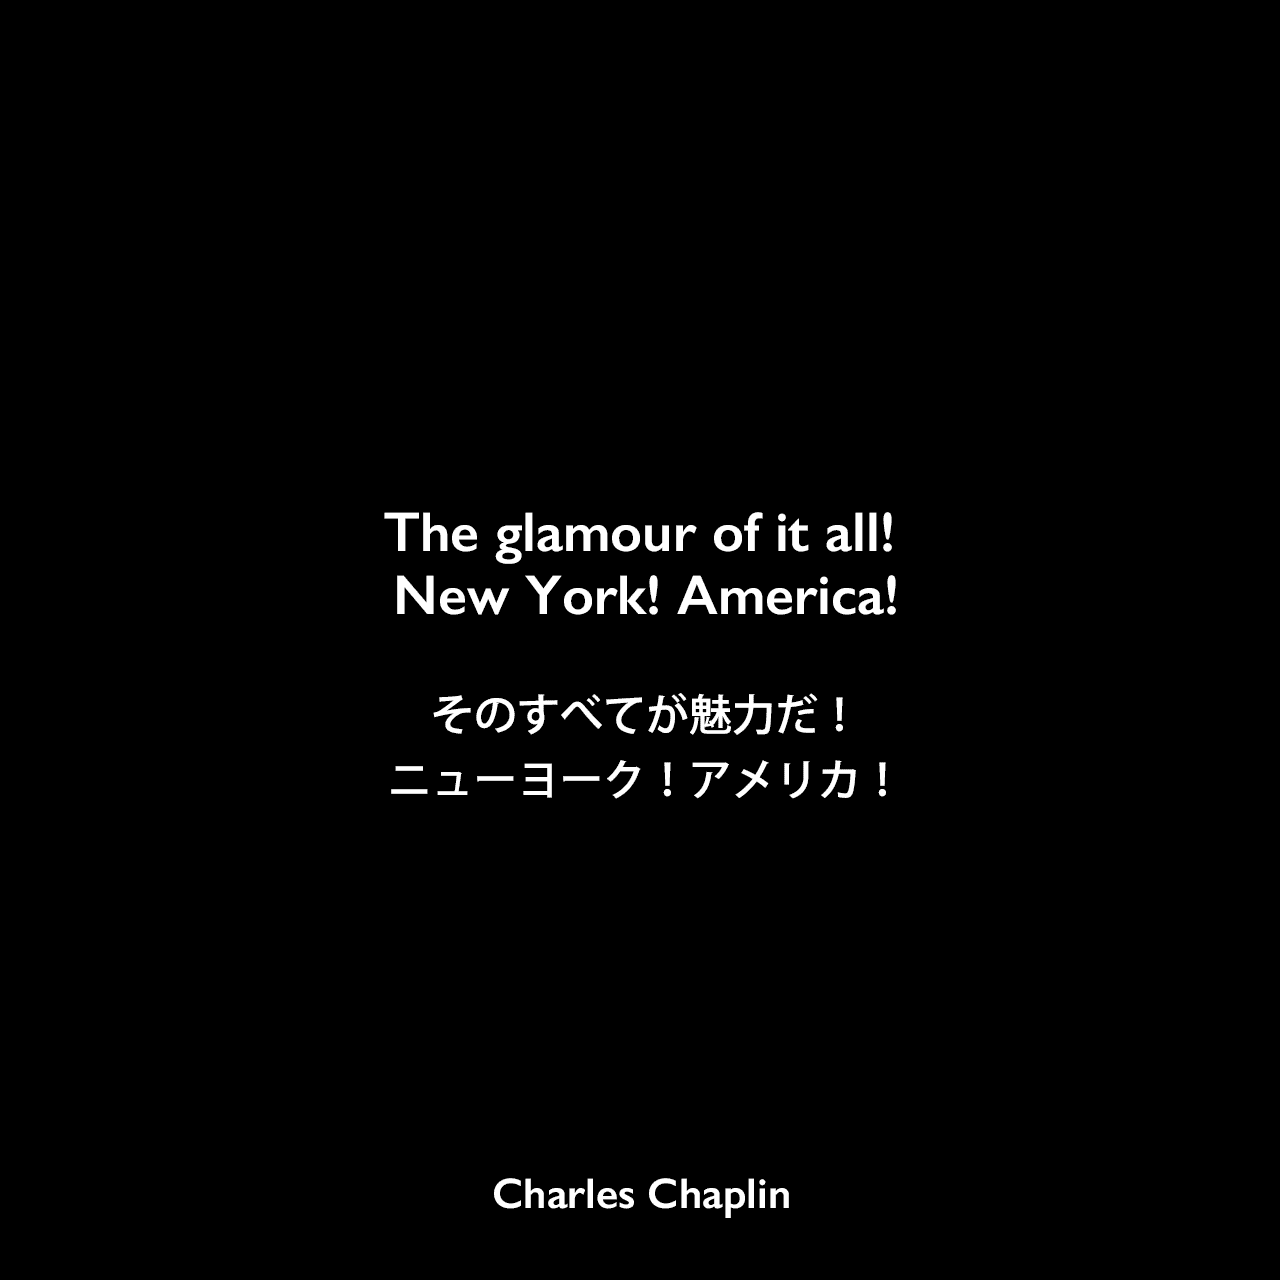 The glamour of it all! New York! America!そのすべてが魅力だ!ニューヨーク!アメリカ!Charles Chaplin